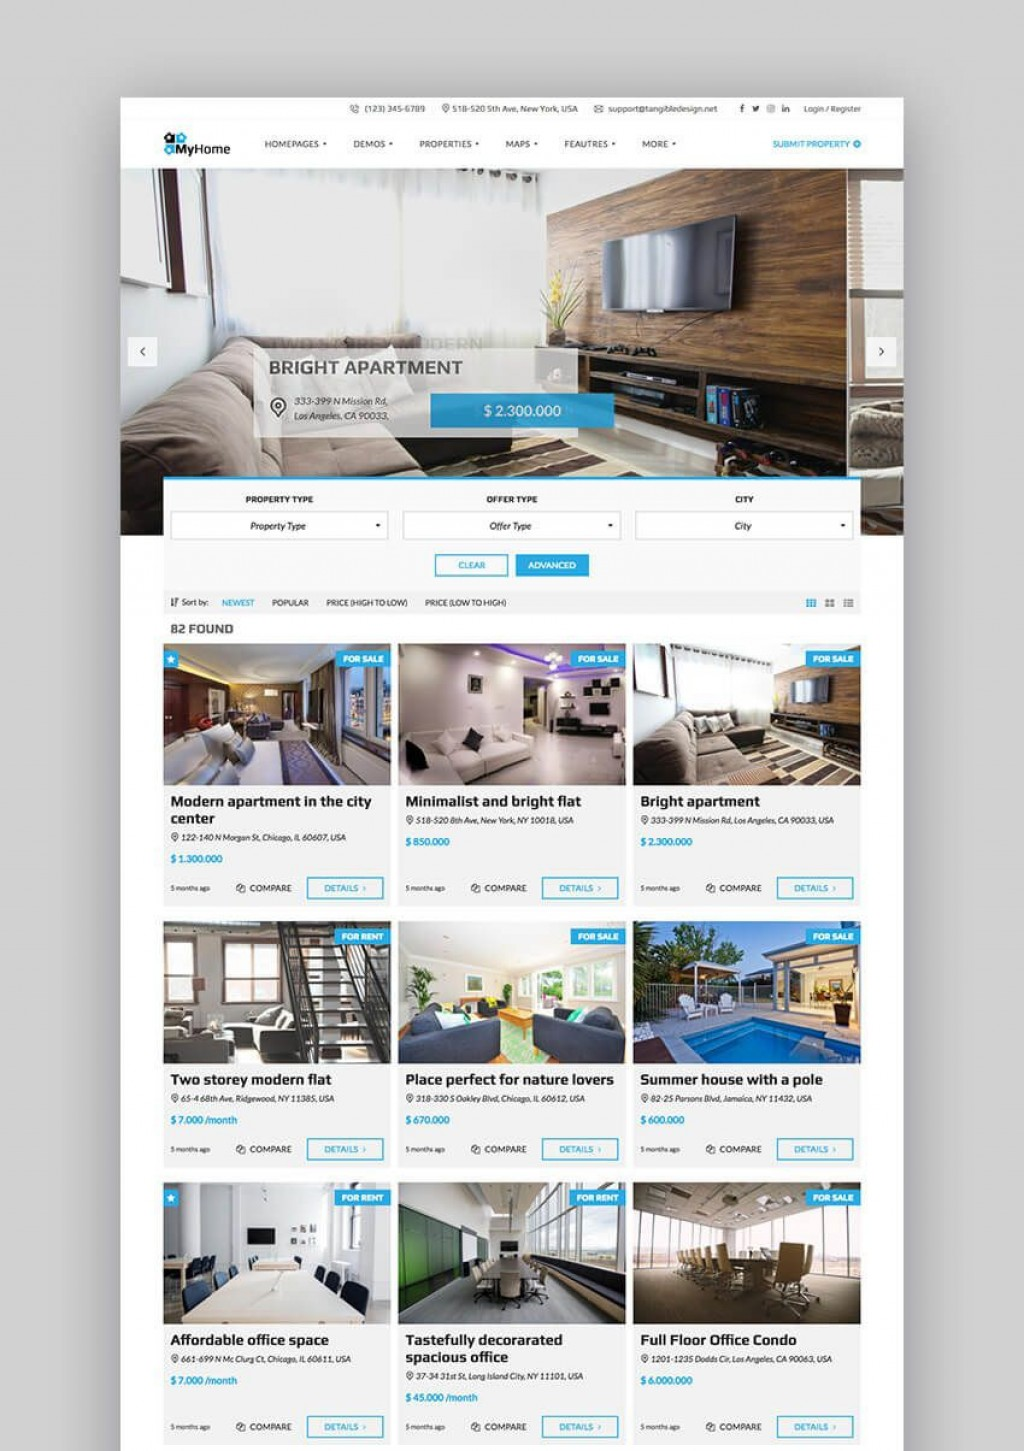 004 Impressive Real Estate Template Wordpres High Definition  Homepres - Theme Free Download RealtyspaceLarge